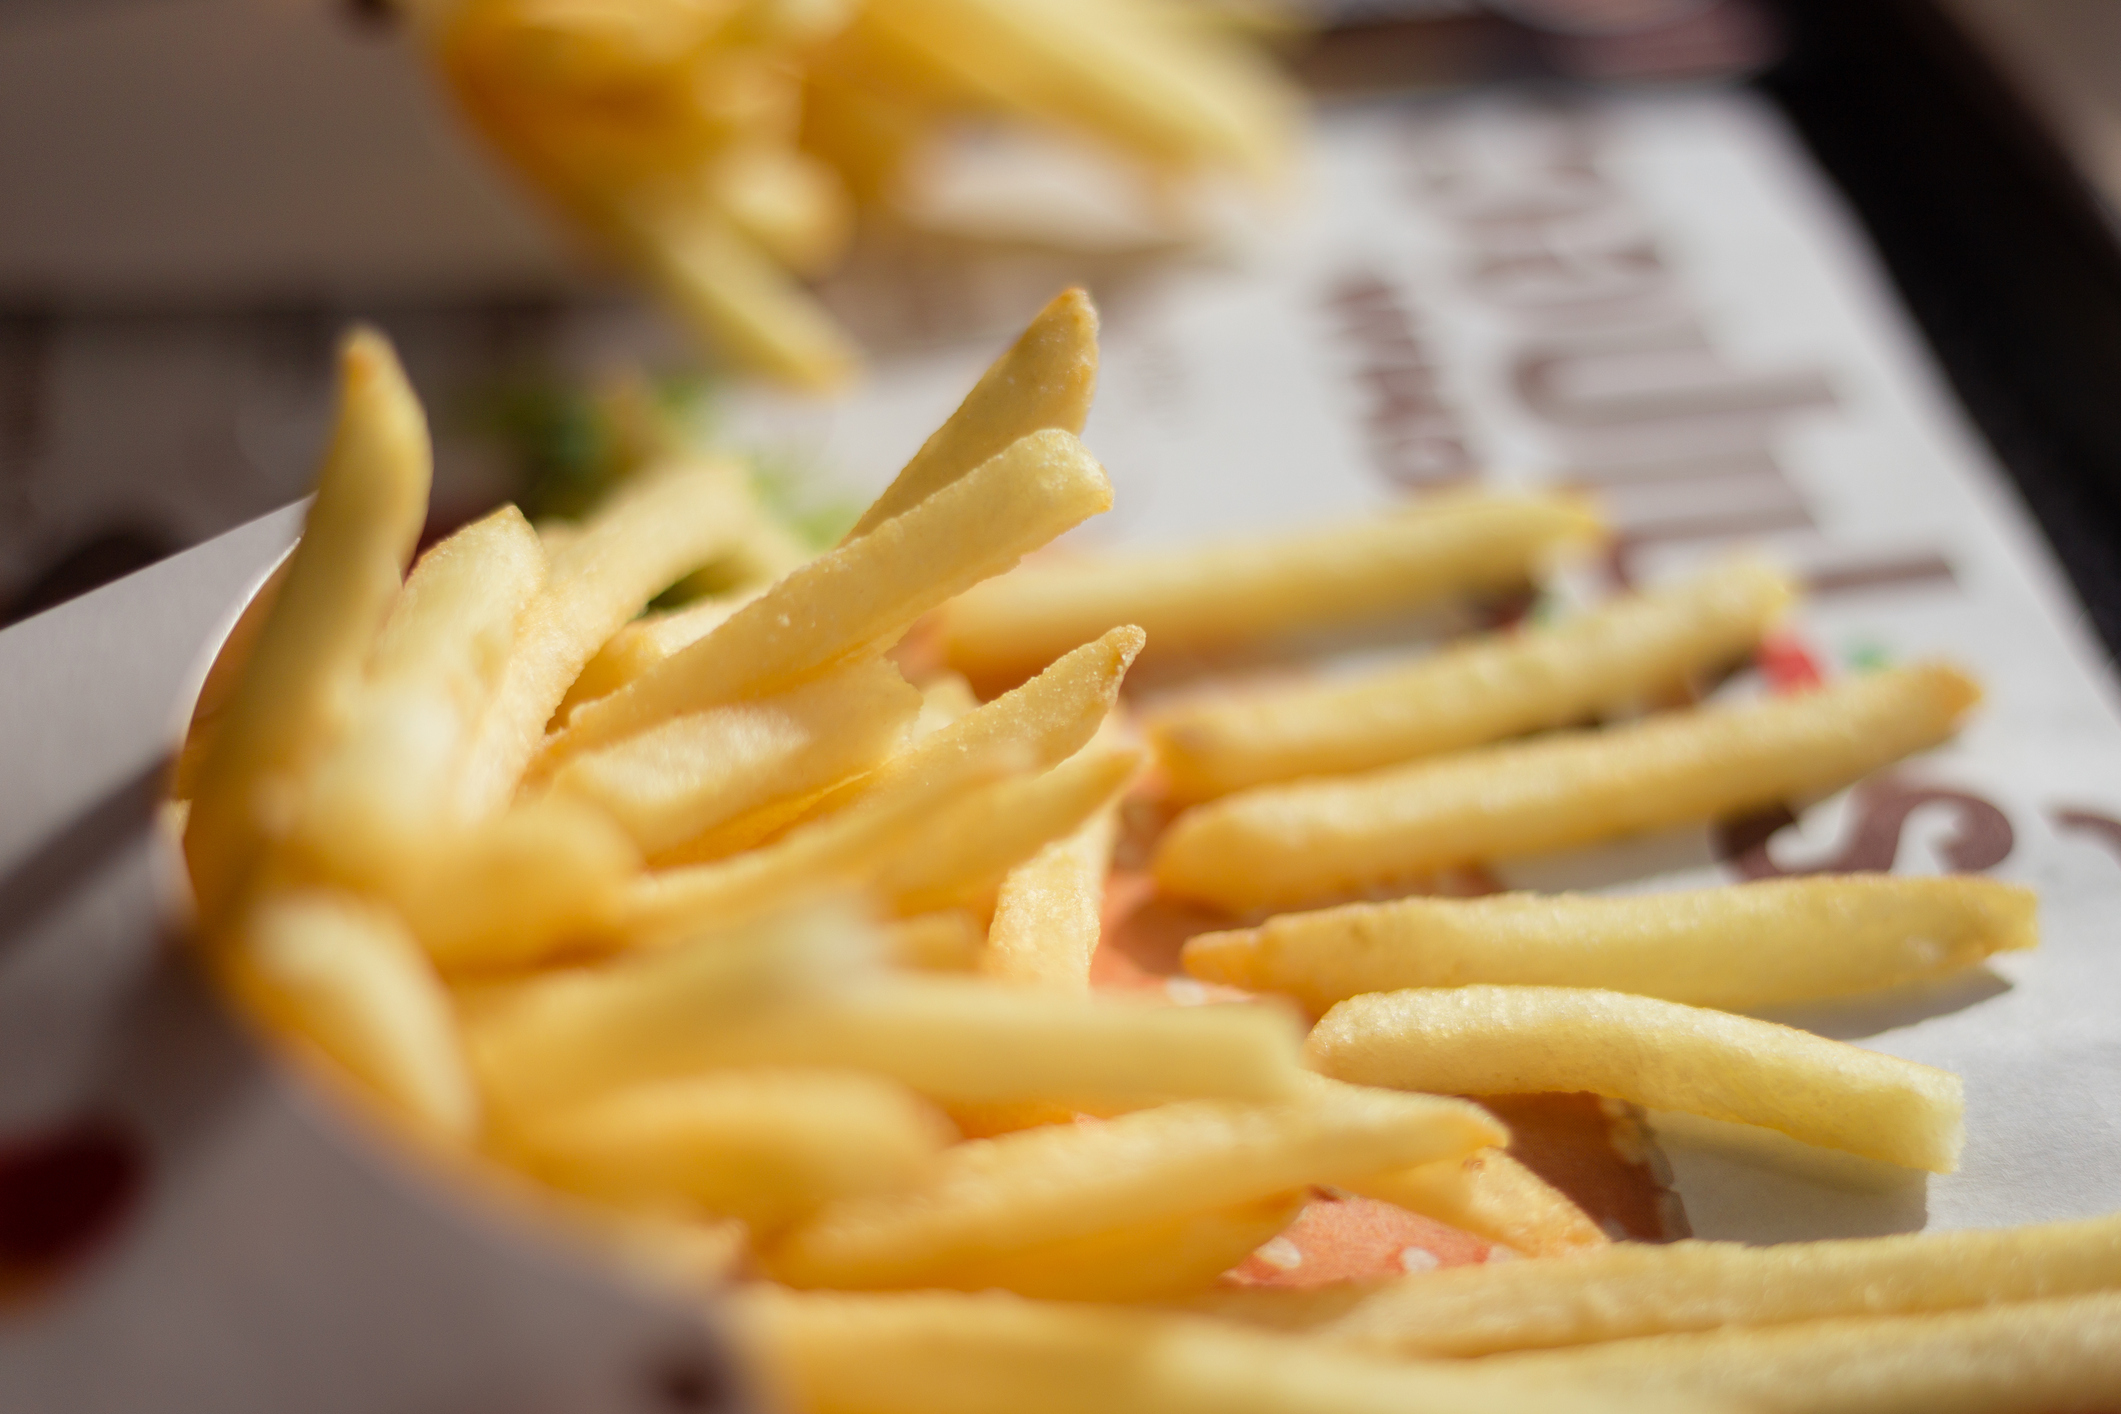 Close-Up Of French Fries In Containers On Table